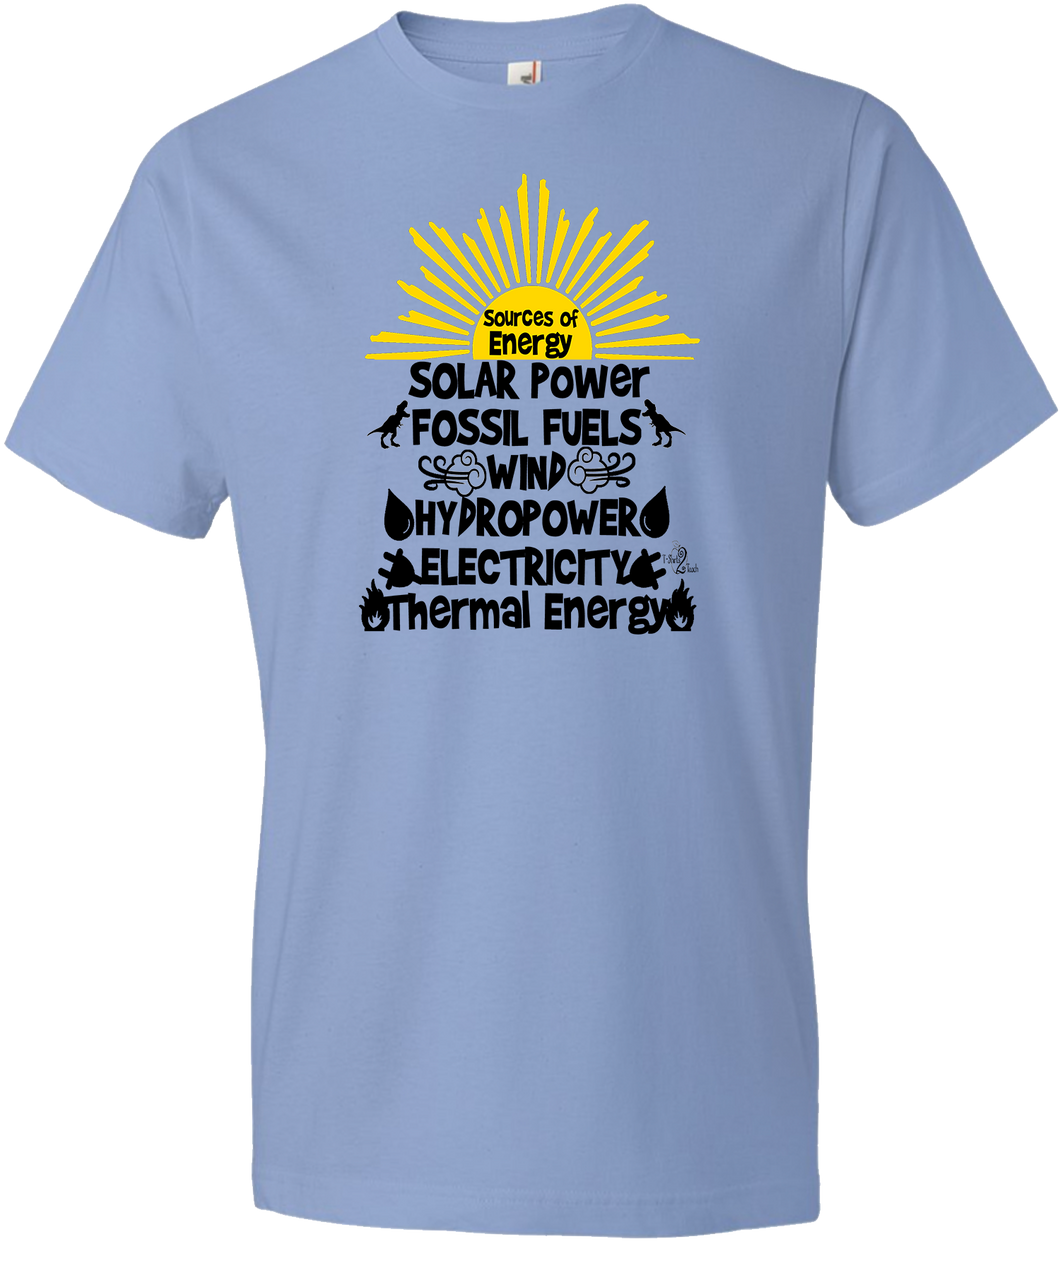 Sources of Energy Tee